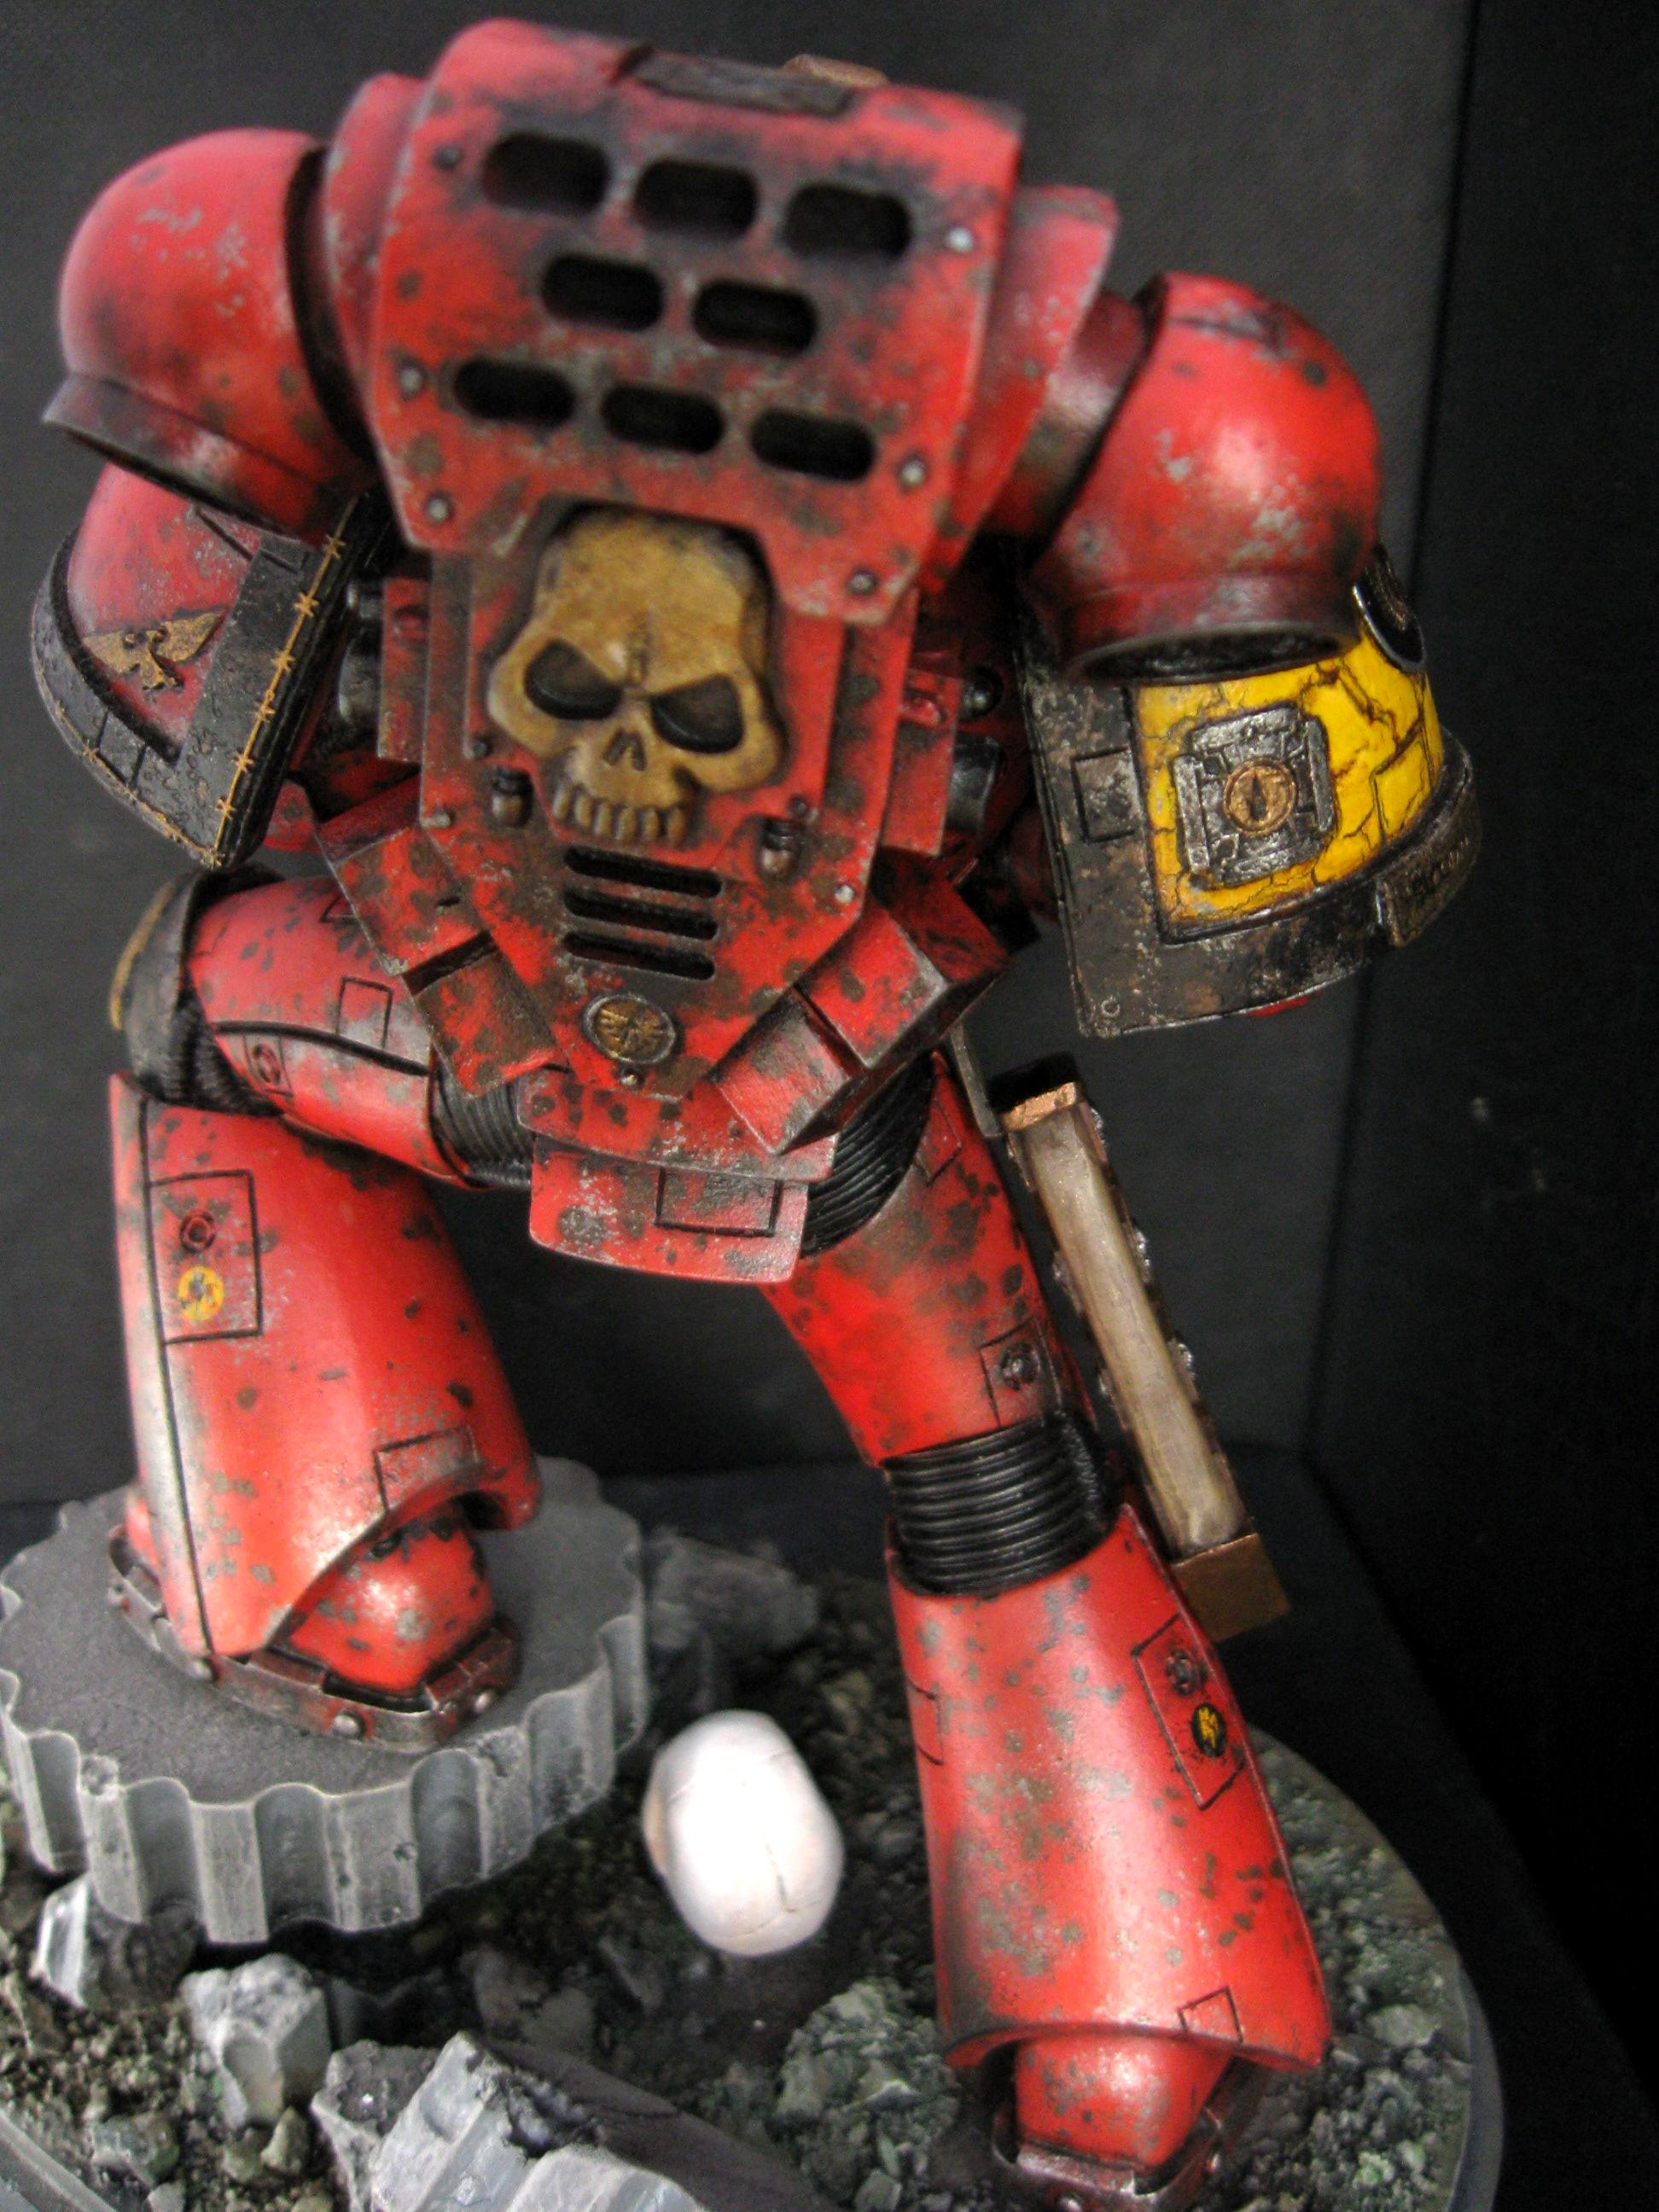 Blood Angels, Forge World, Large, Space Marines, Warhammer